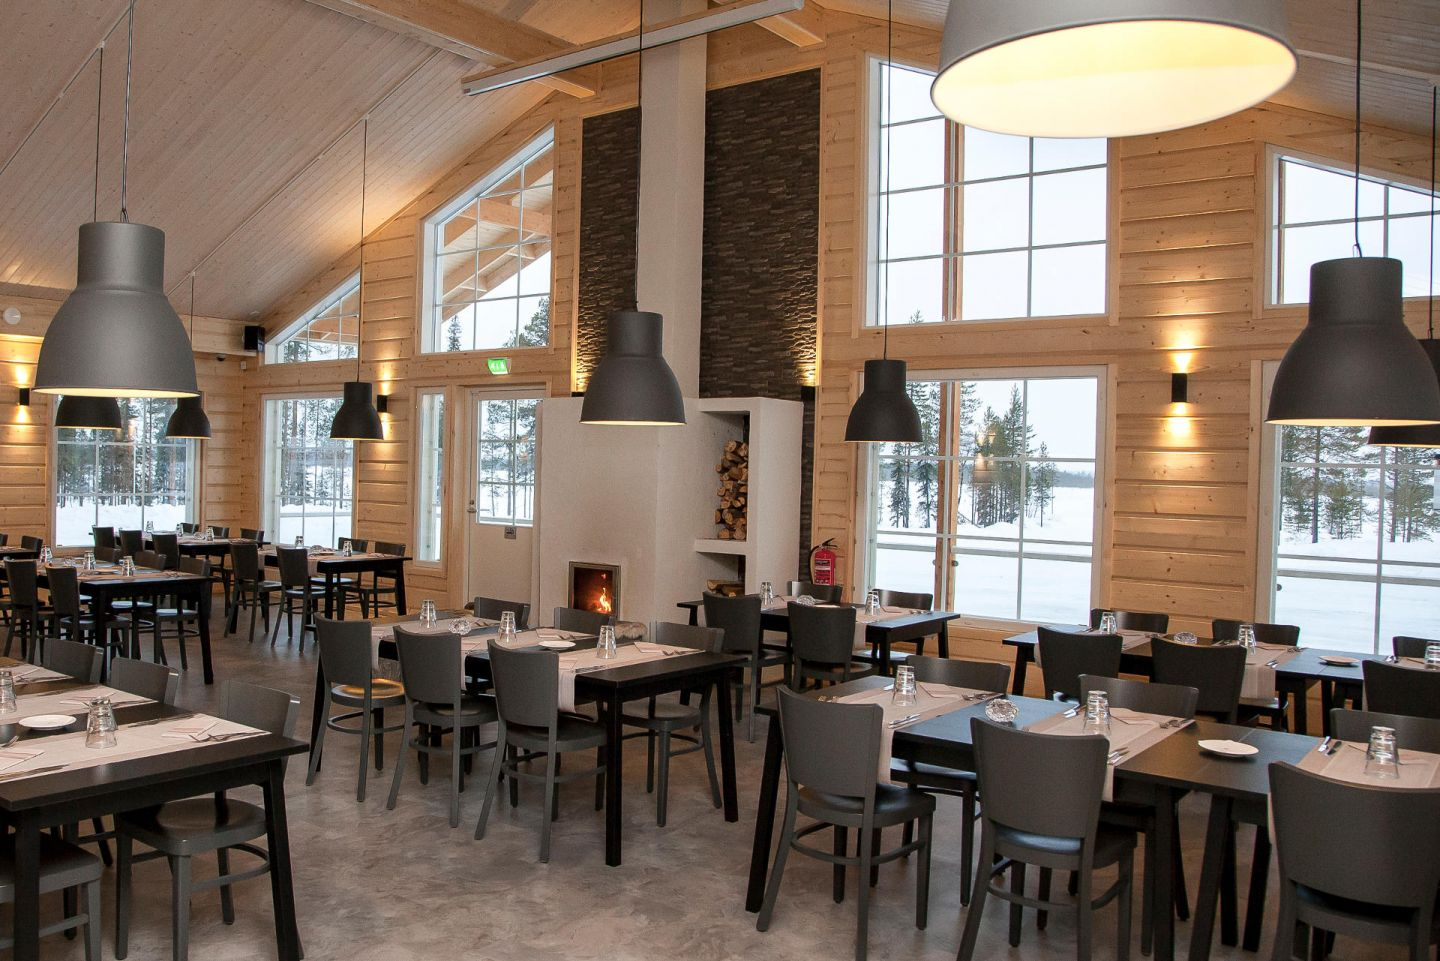 Inside the Levi rally center restaurant at Lapland Driving